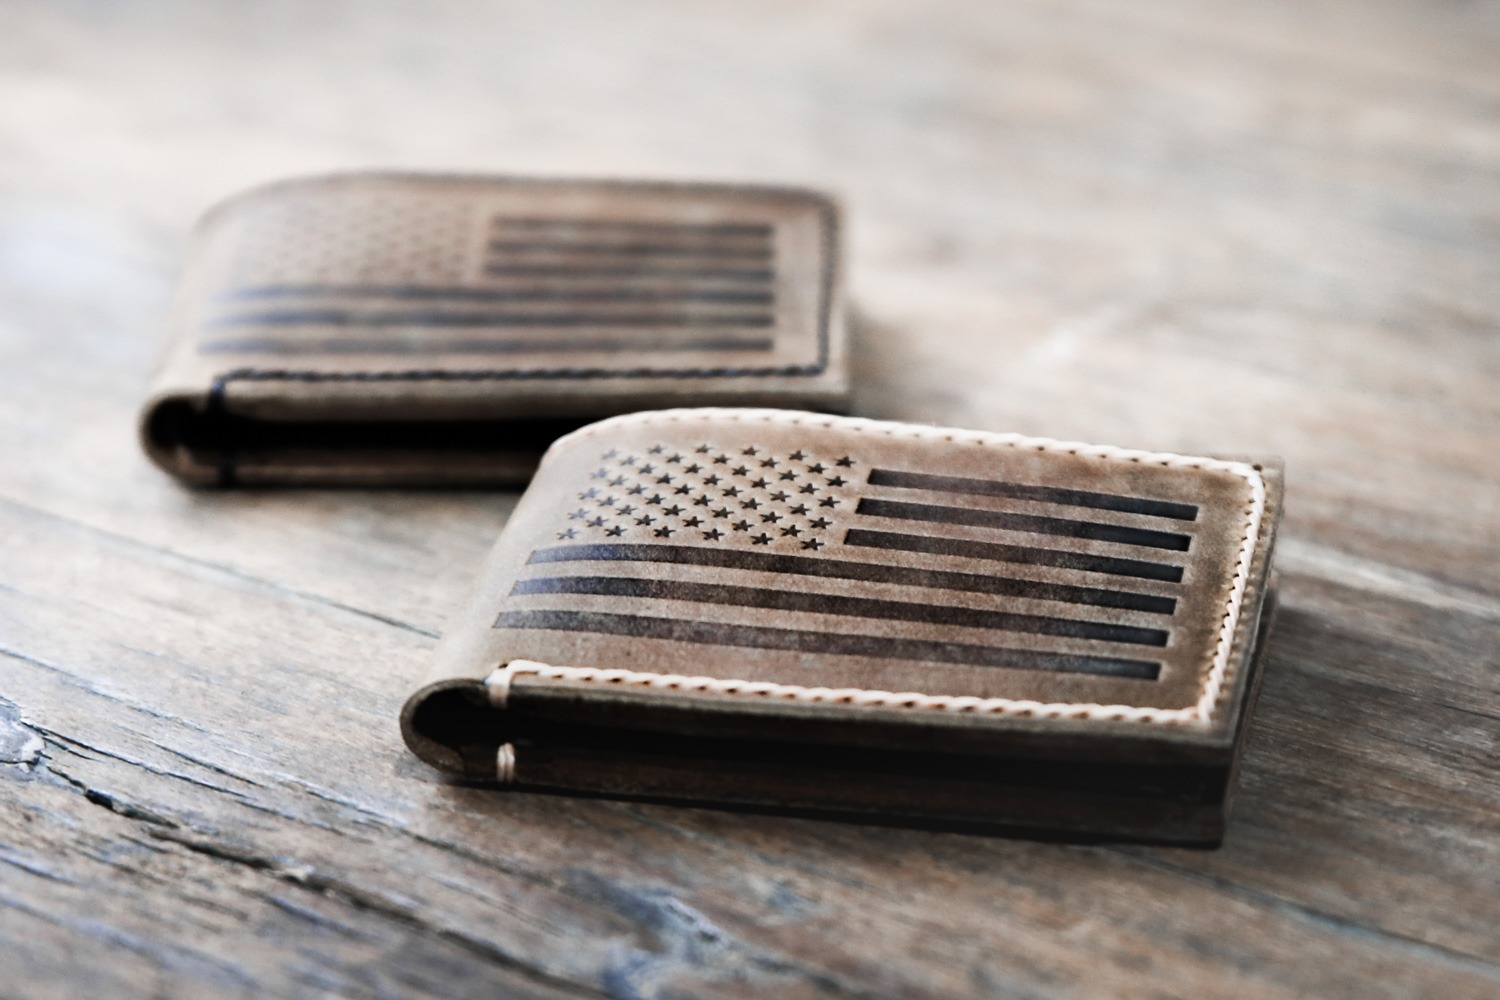 Back by popular demand, here is our updated version of the American Flag Bifold Wallet #JooJoobs